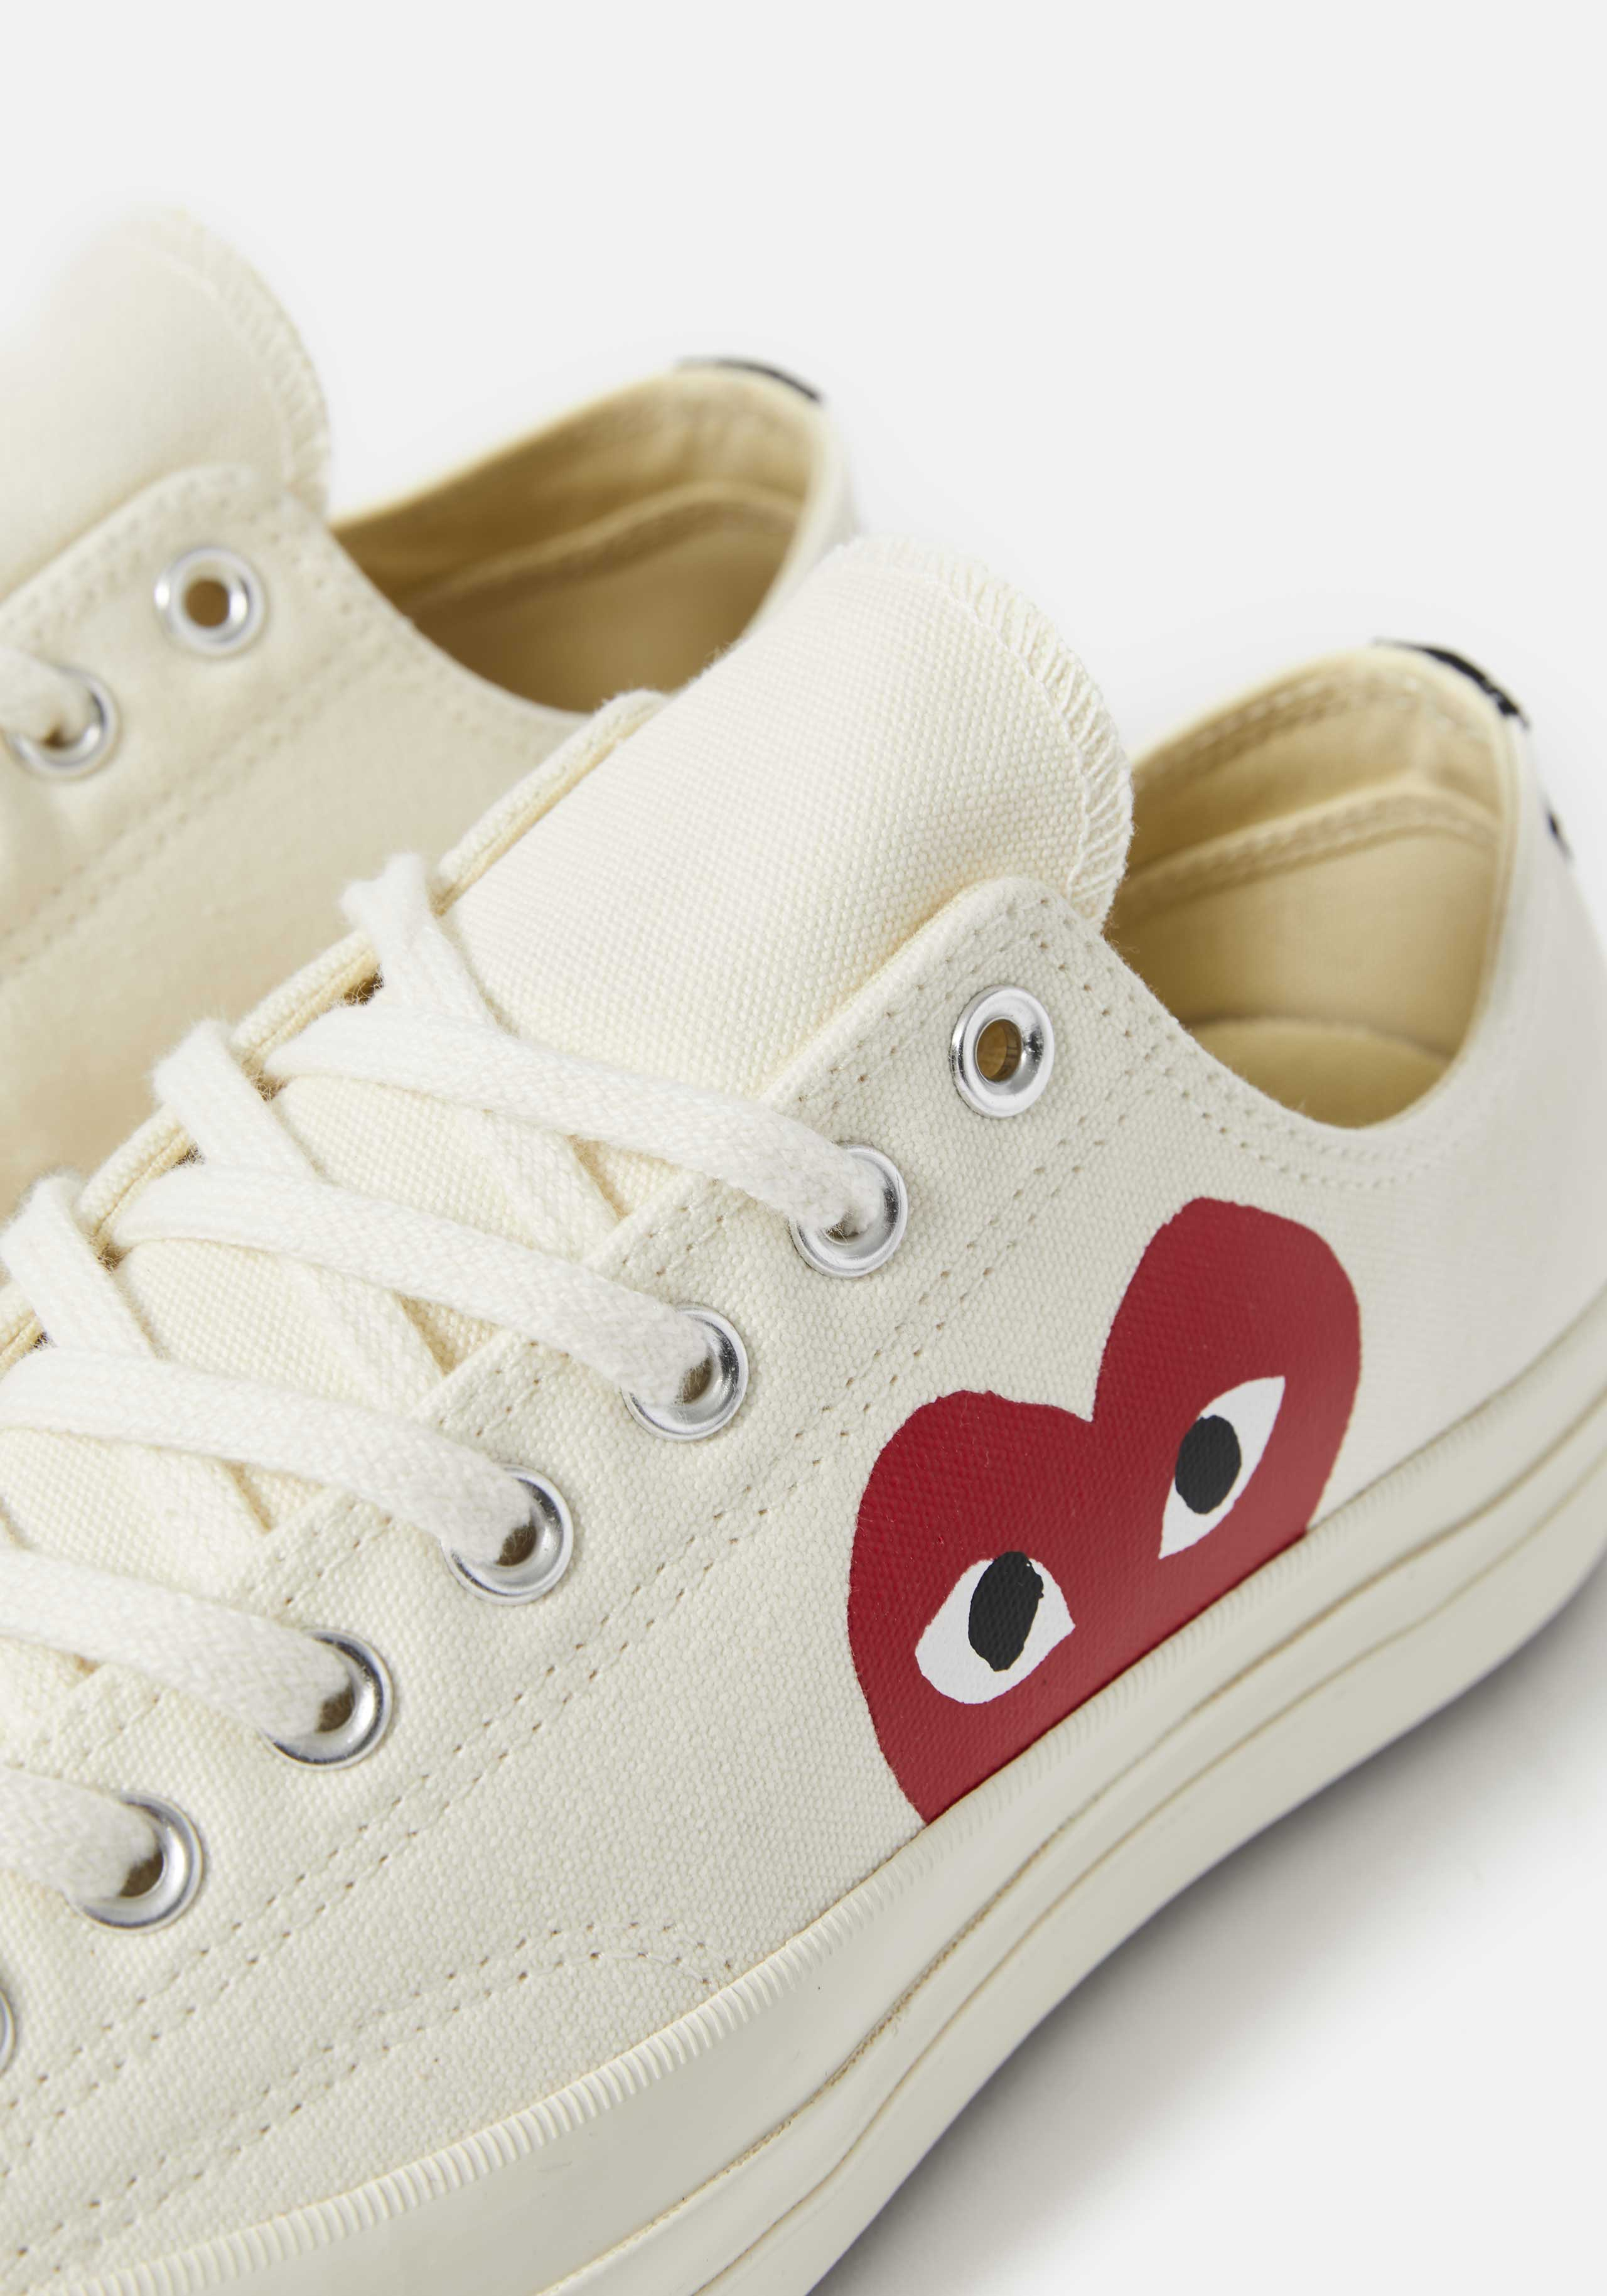 cdg play converse red heart 70s low 3